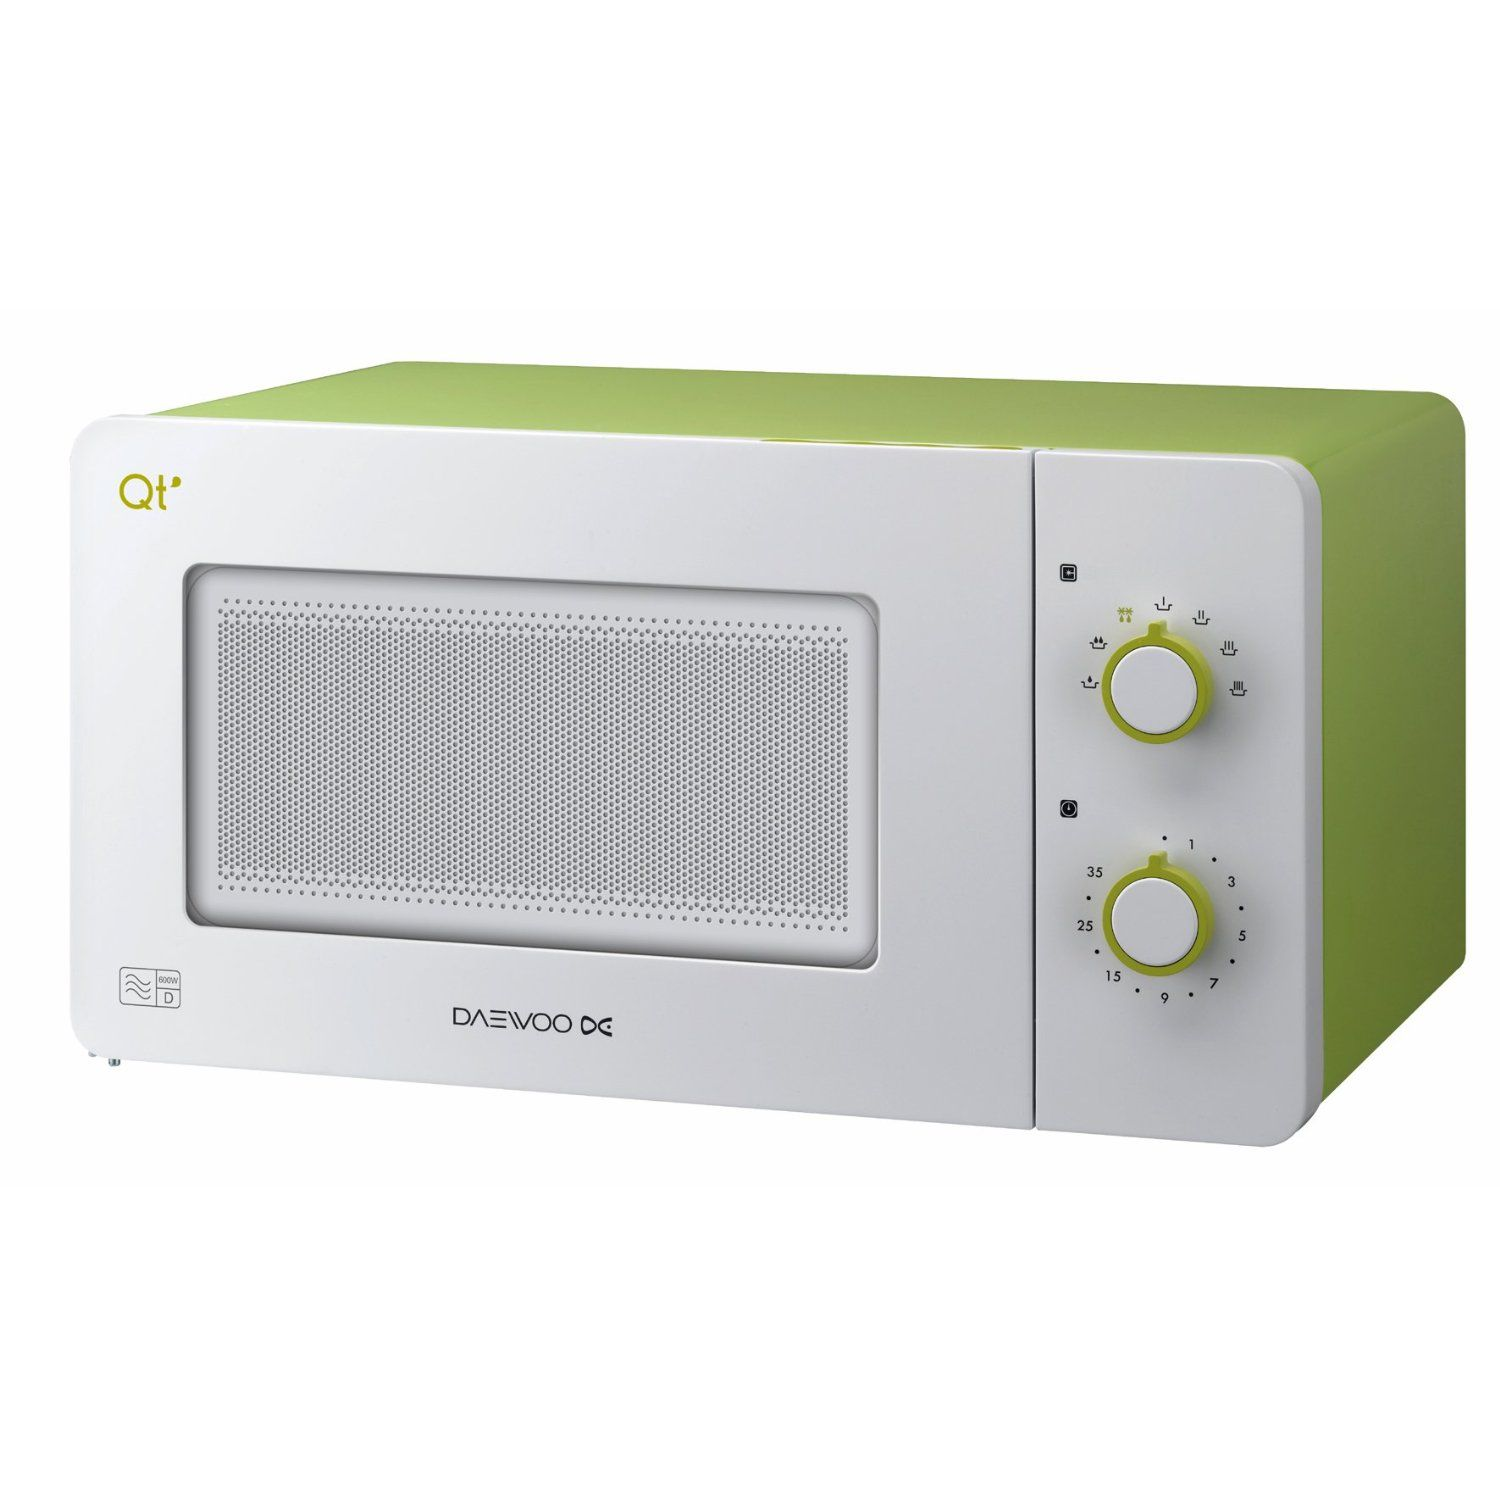 Daewoo Qt2 Compact Microwave Oven 14 Litre 600 Watt White Lime Green